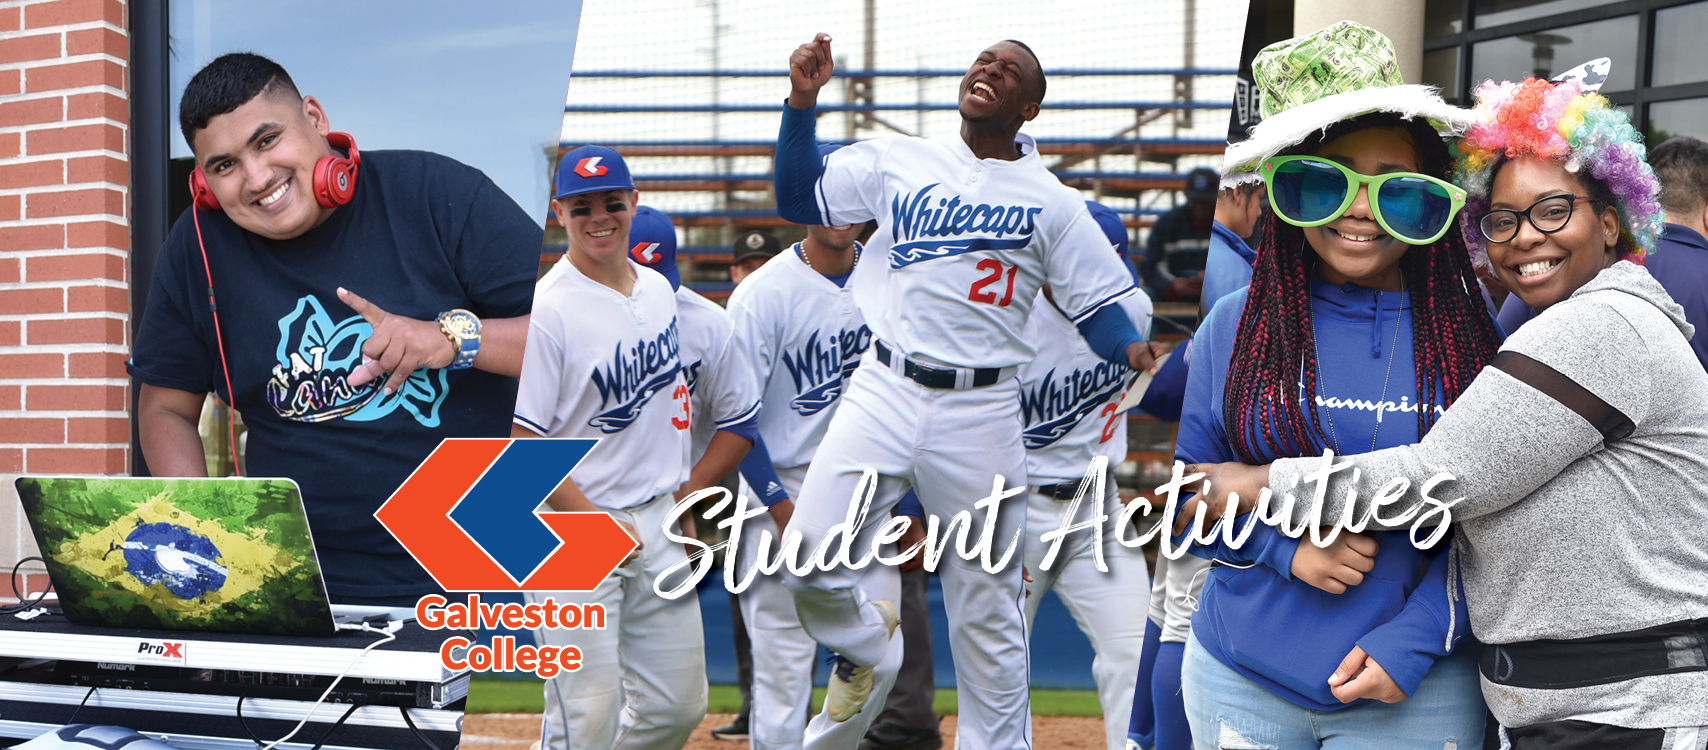 Student Activities at Galveston College